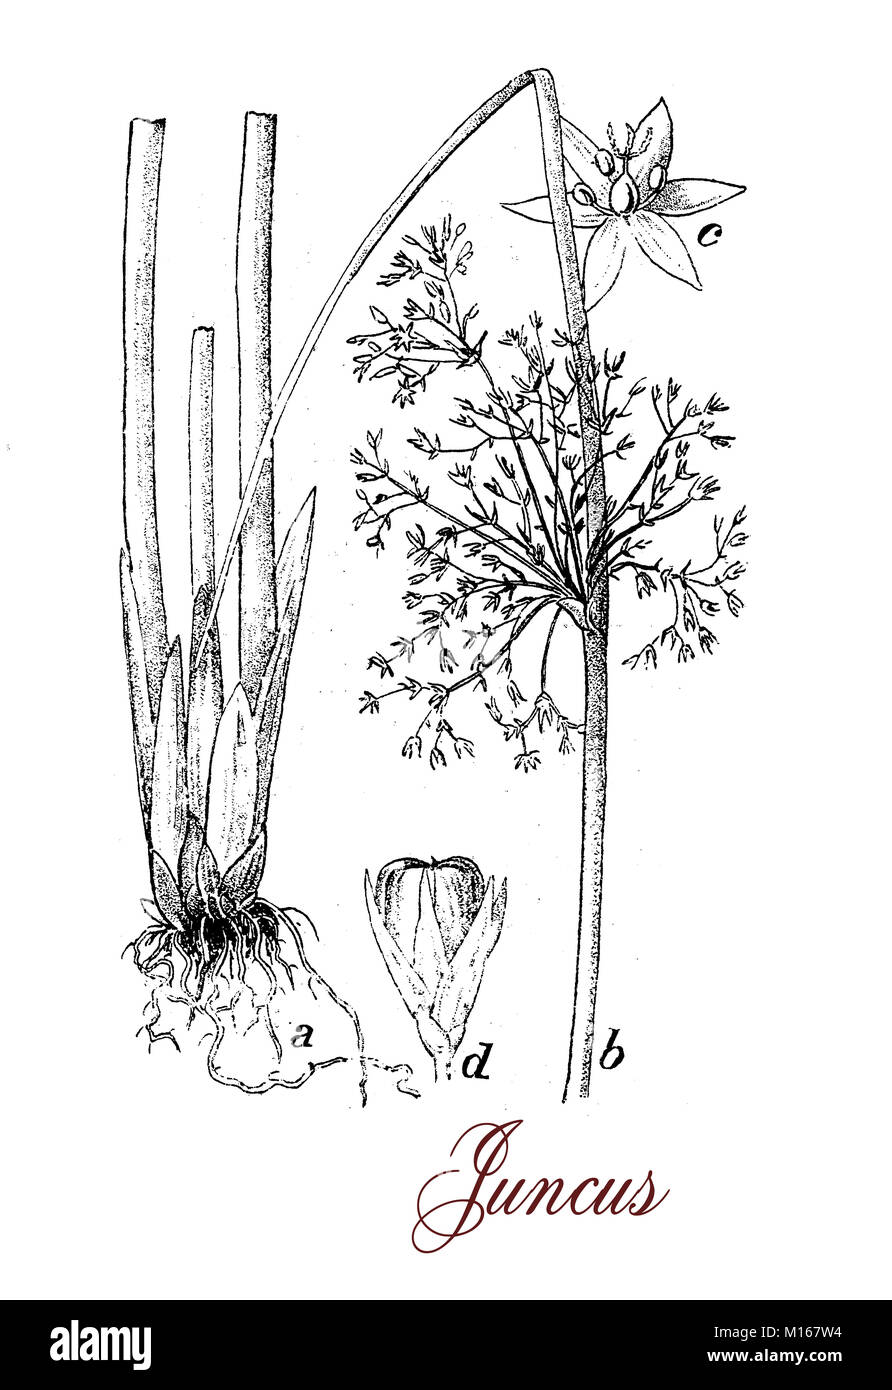 Vintage engraving of Juncus or rushes,flowering herbaceous plant of Juncaceae family, grows in cold and wet environment - Stock Image